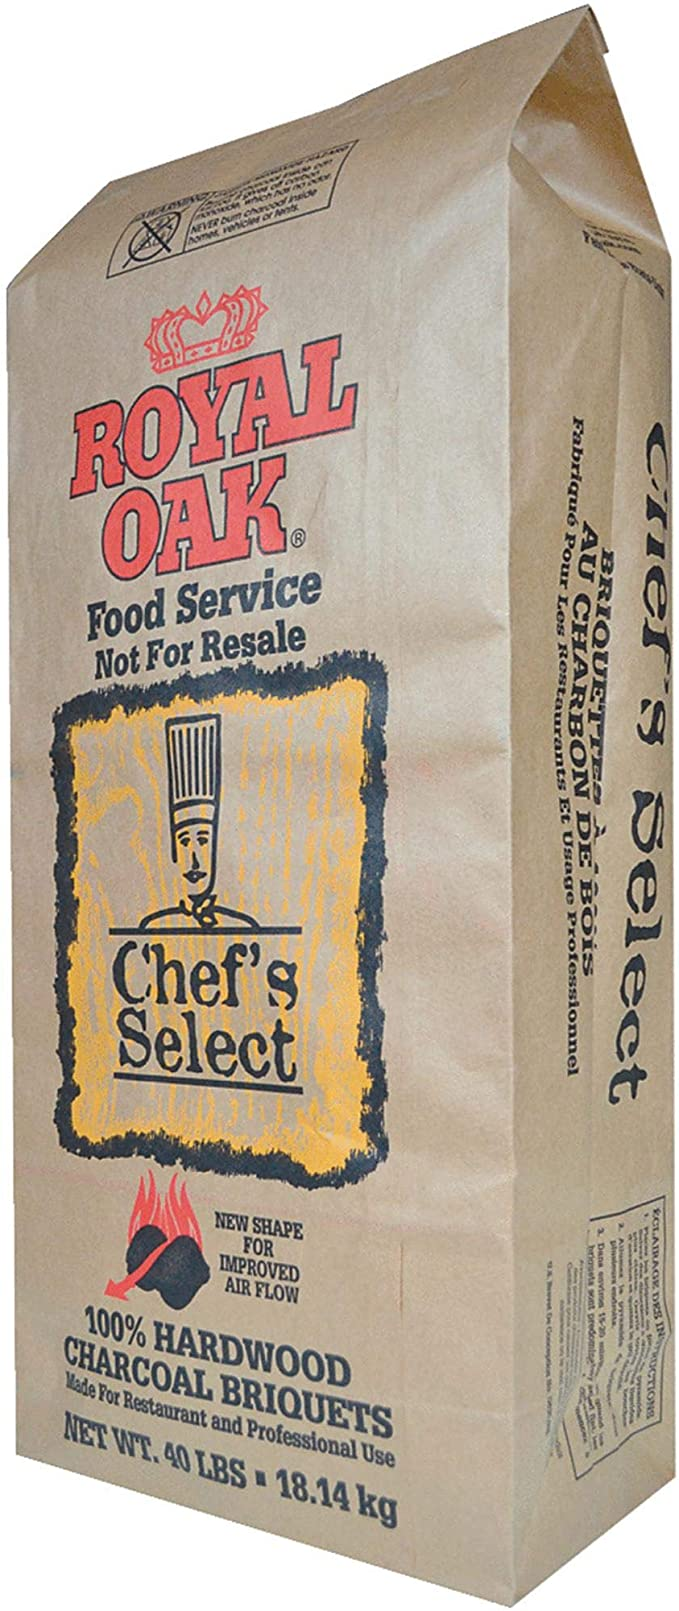 Royal Oak Chef's Select Charcoal Briquettes - Best for All Types of Smokers and Grills